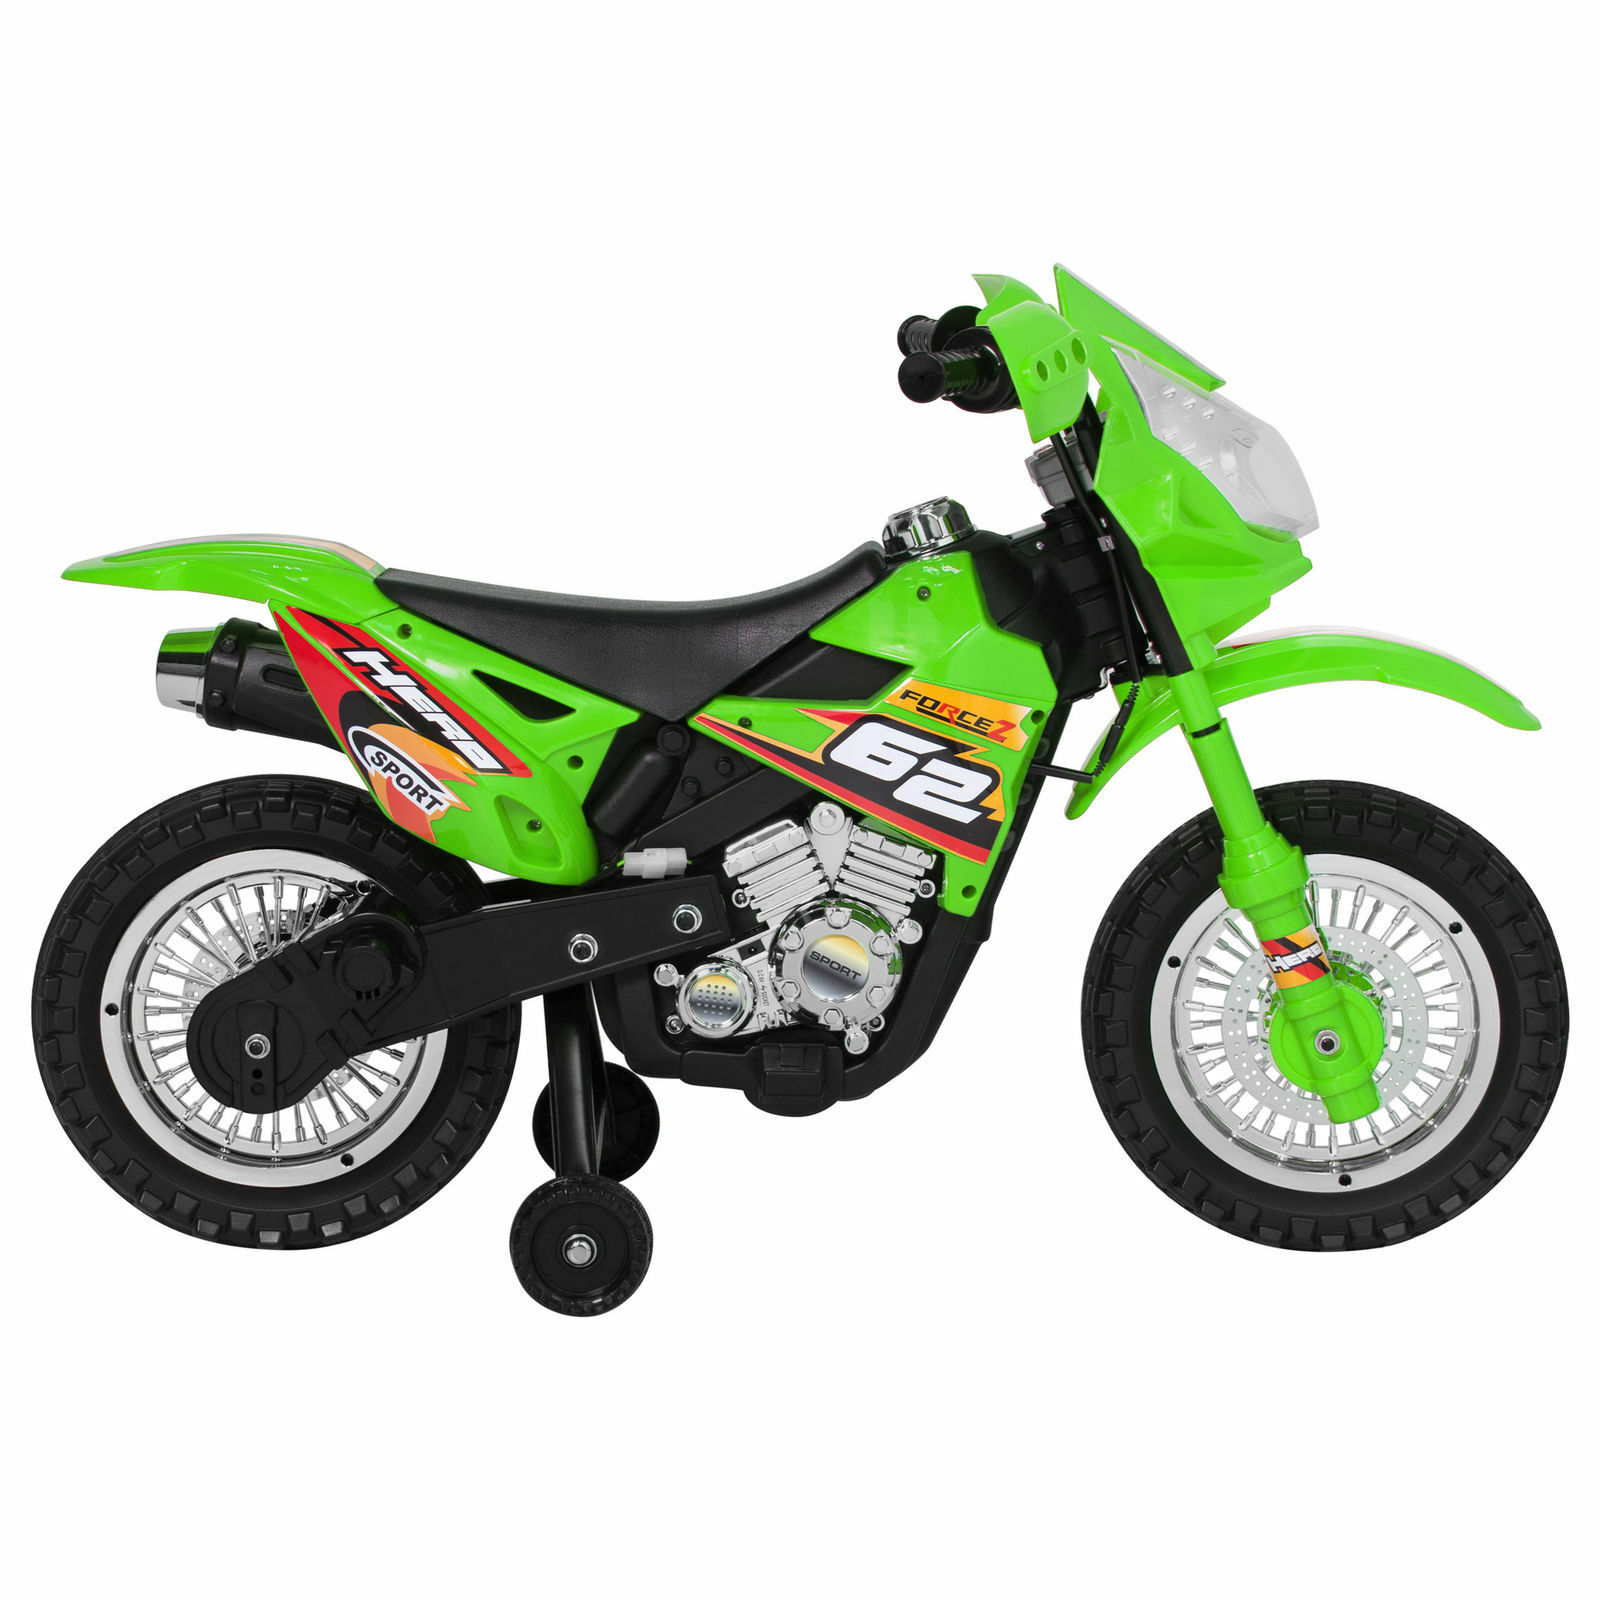 electric bike dirt motorcycle wheels training 6v ride choice toy speed battery powered bikes lights outdoor charger description